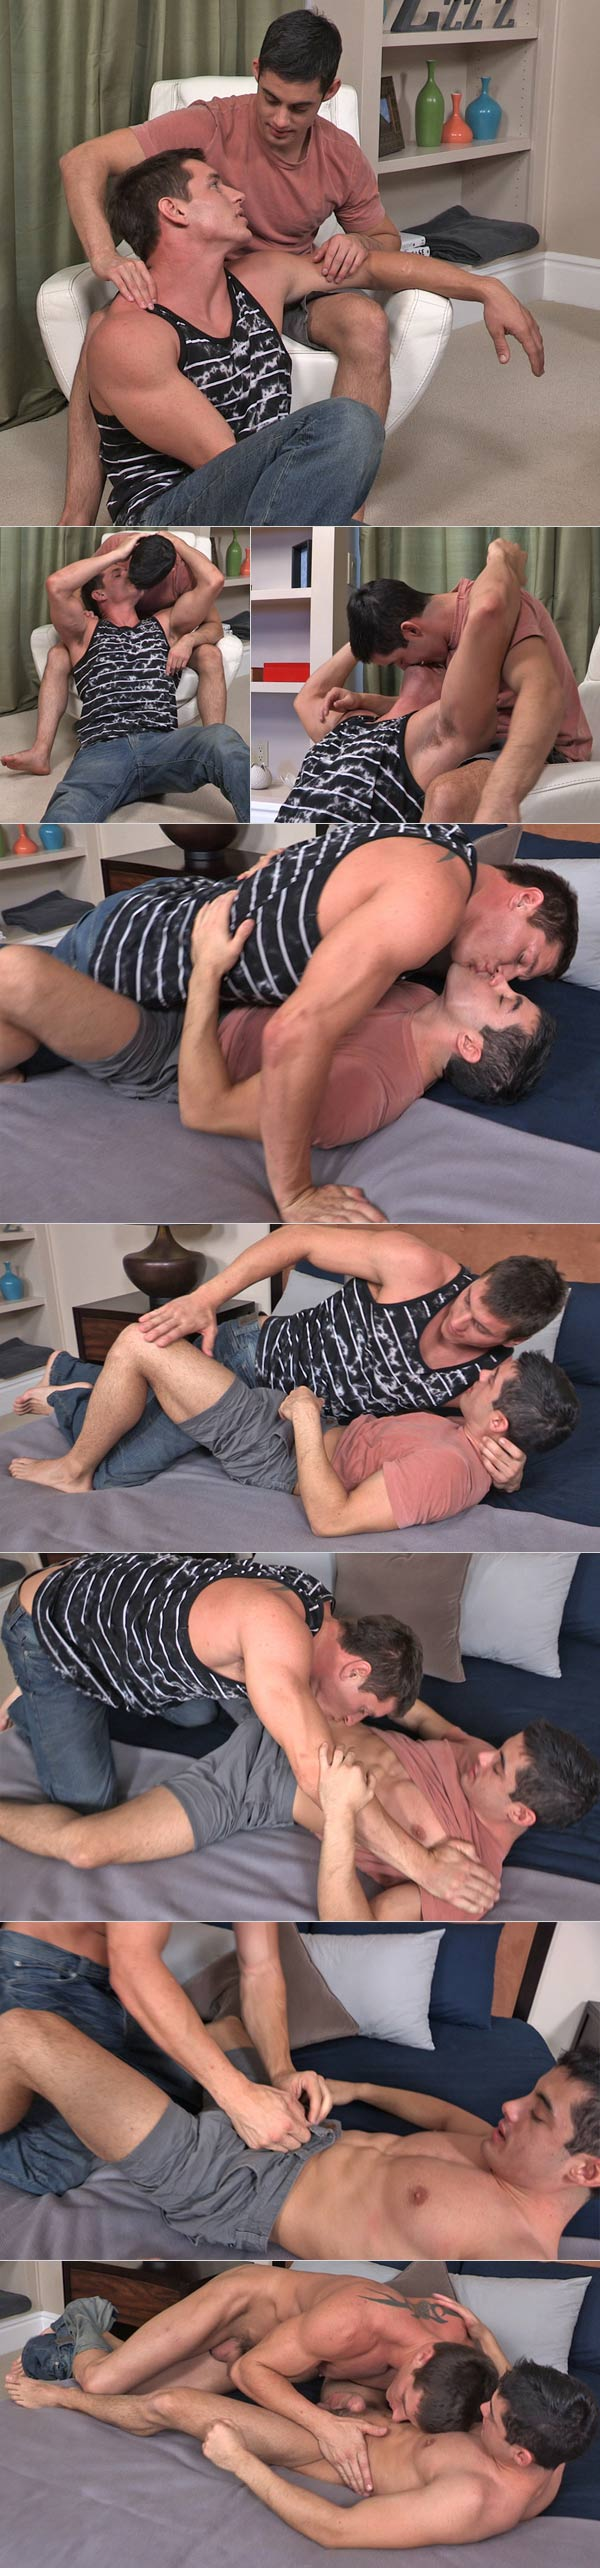 Grant & Ashton (Bareback) at SeanCody